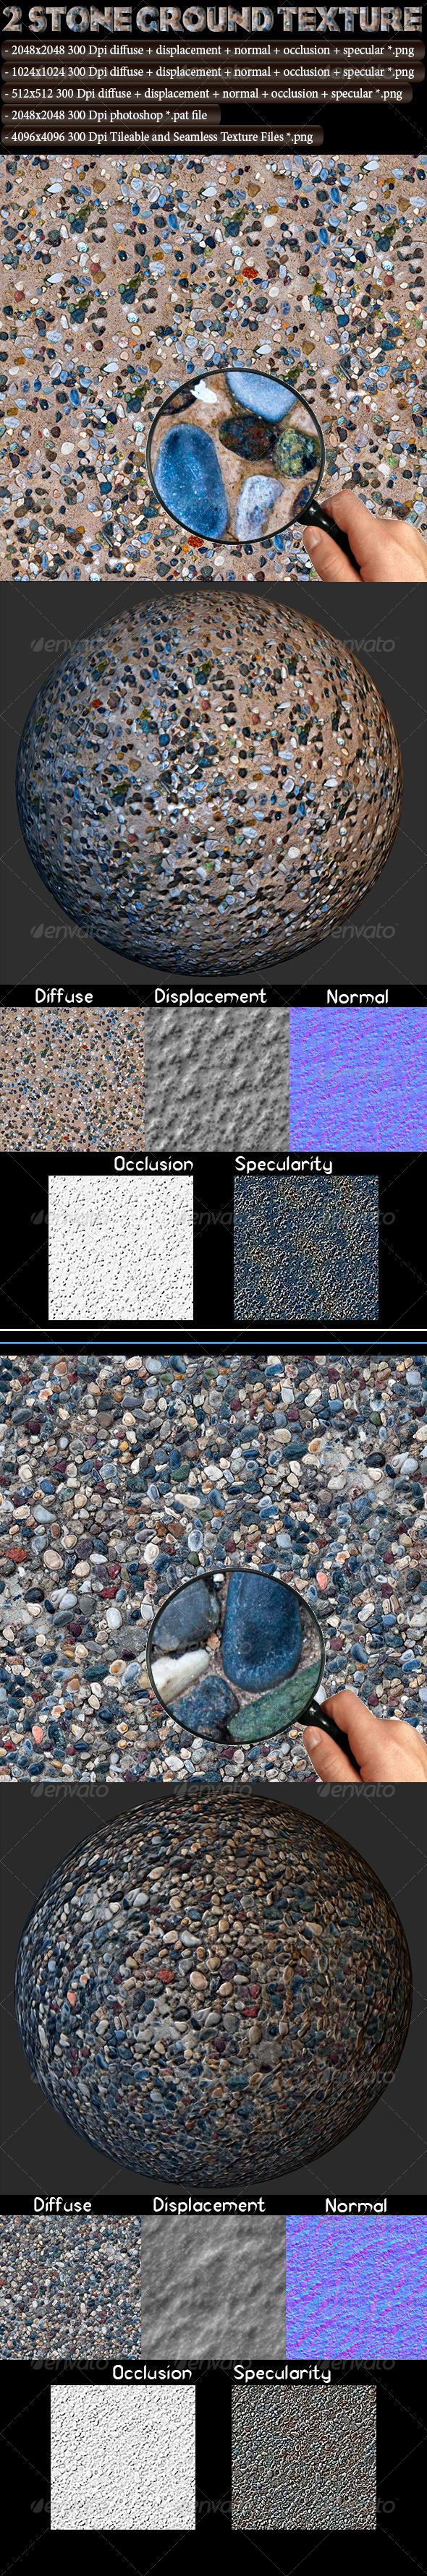 2 Stone Ground Texture - 3DOcean Item for Sale